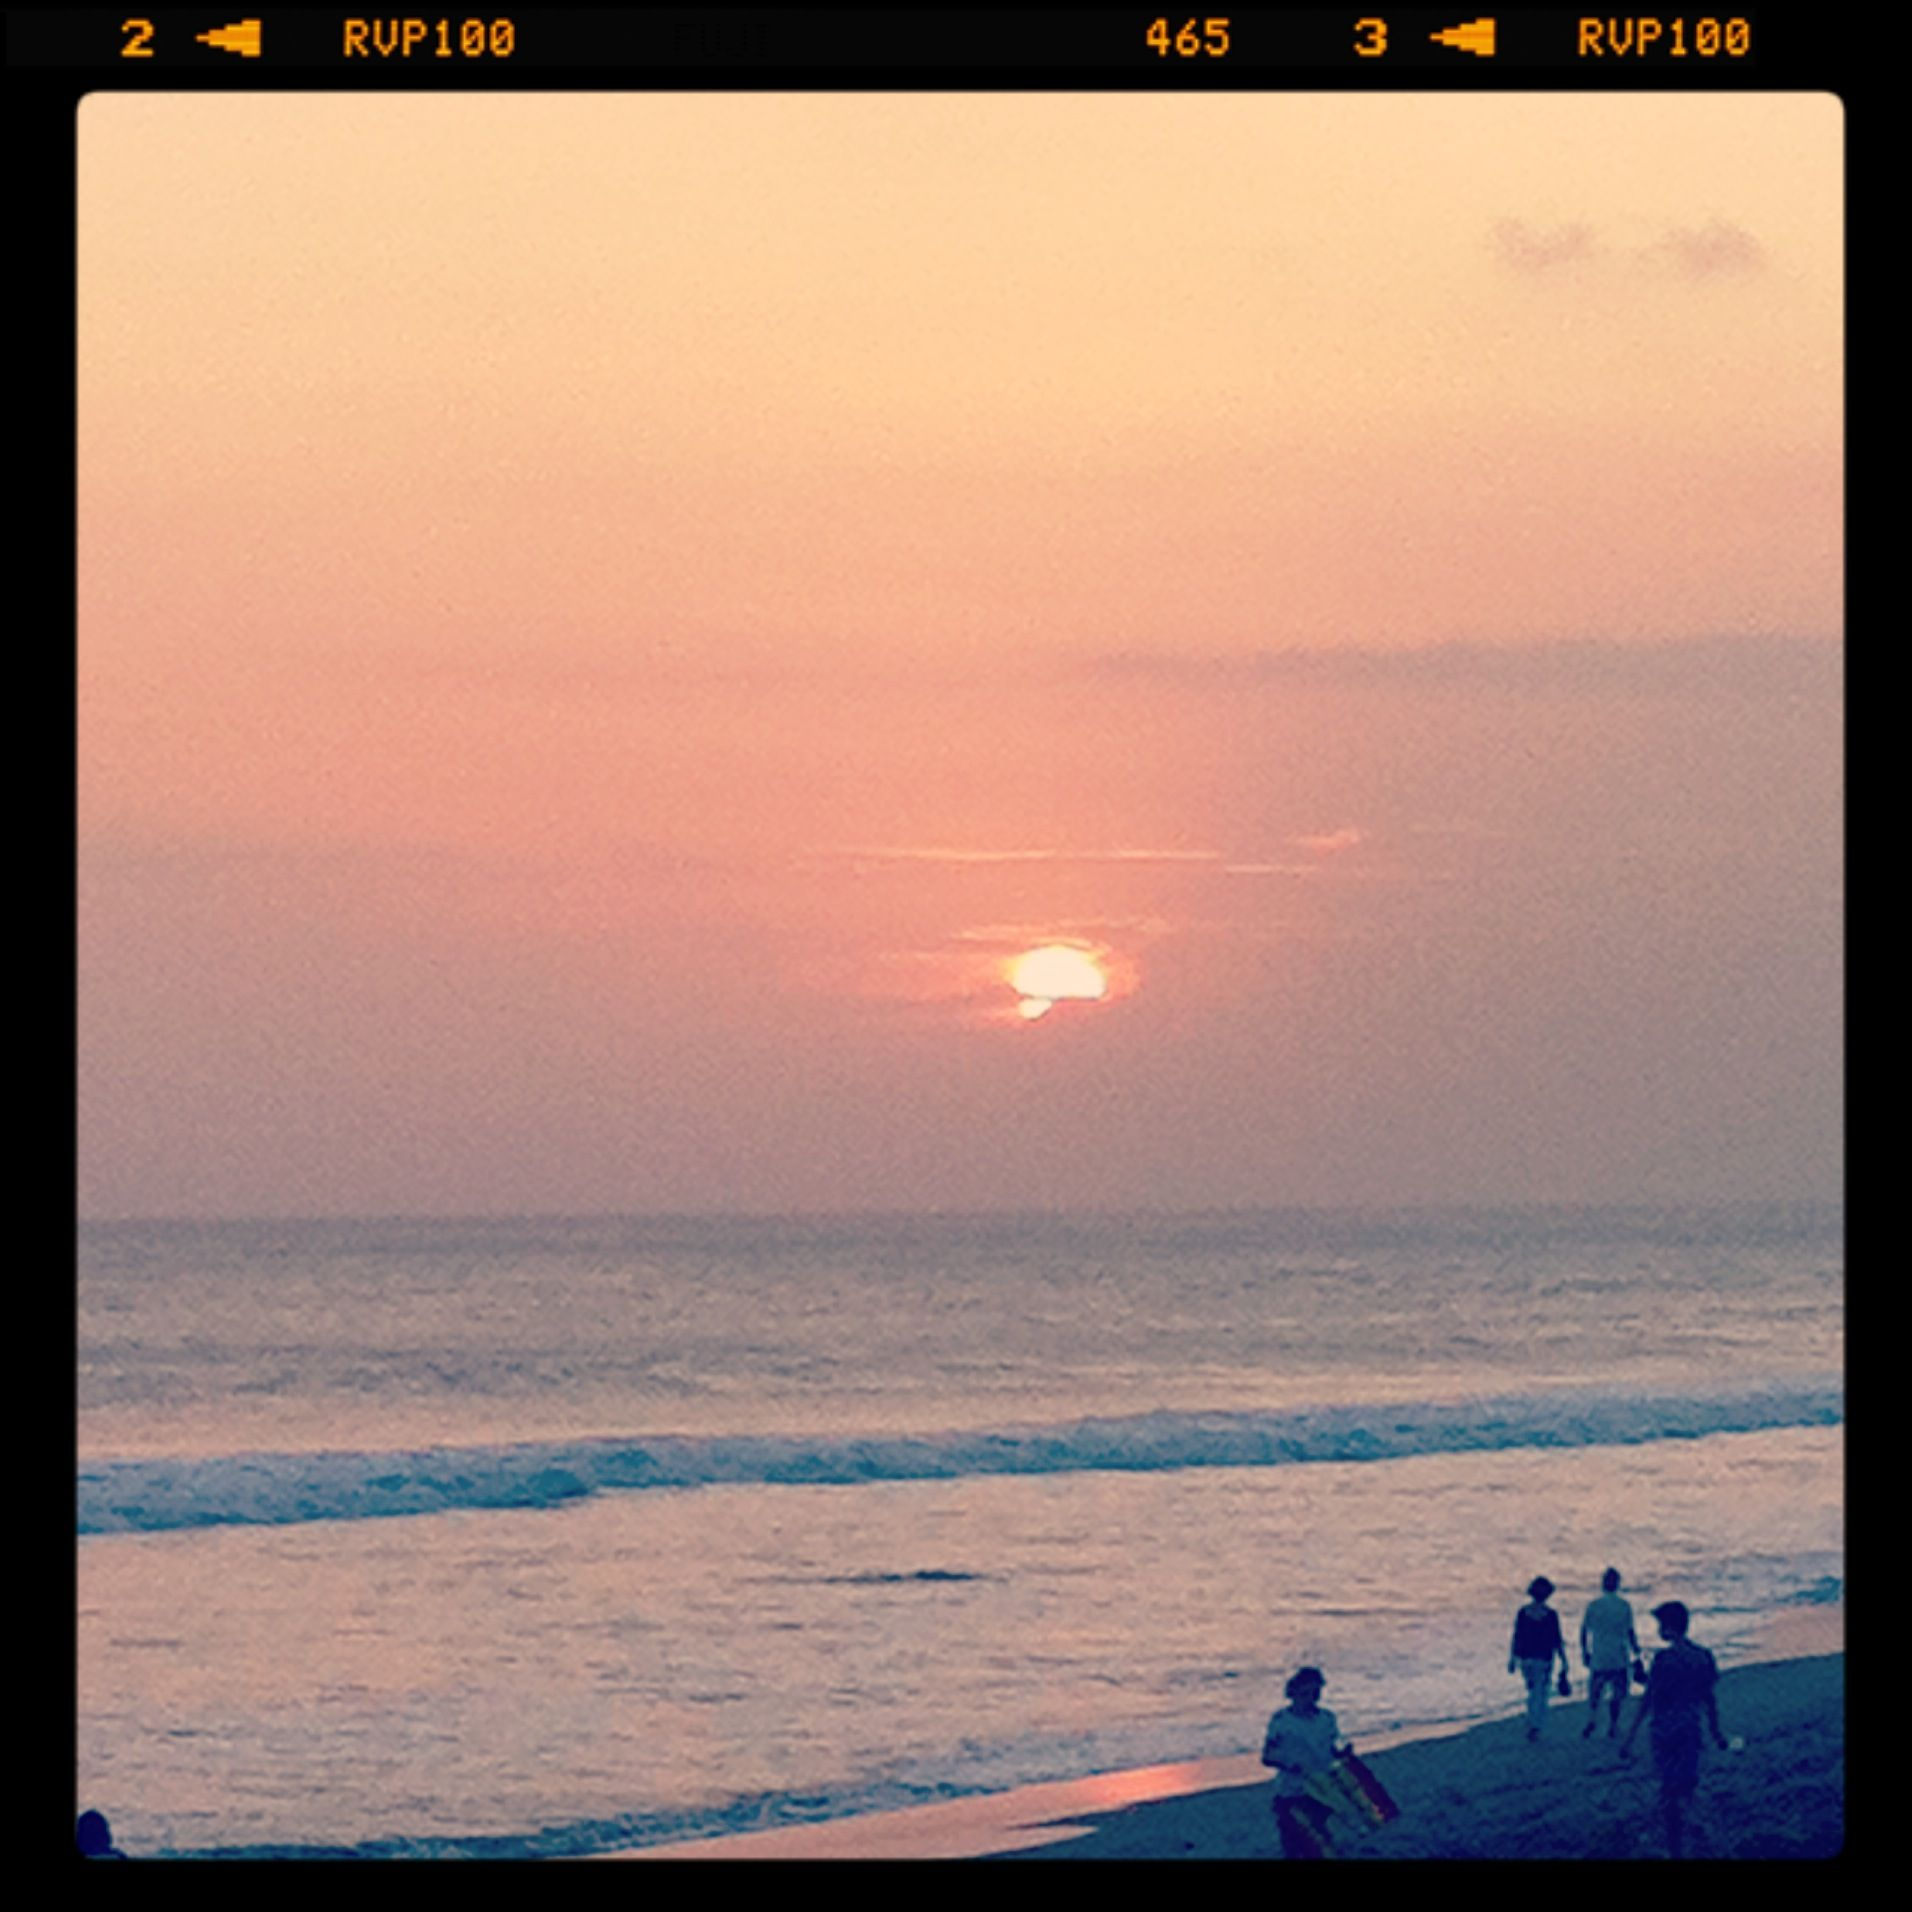 #Holiday in #Bali June, 2014